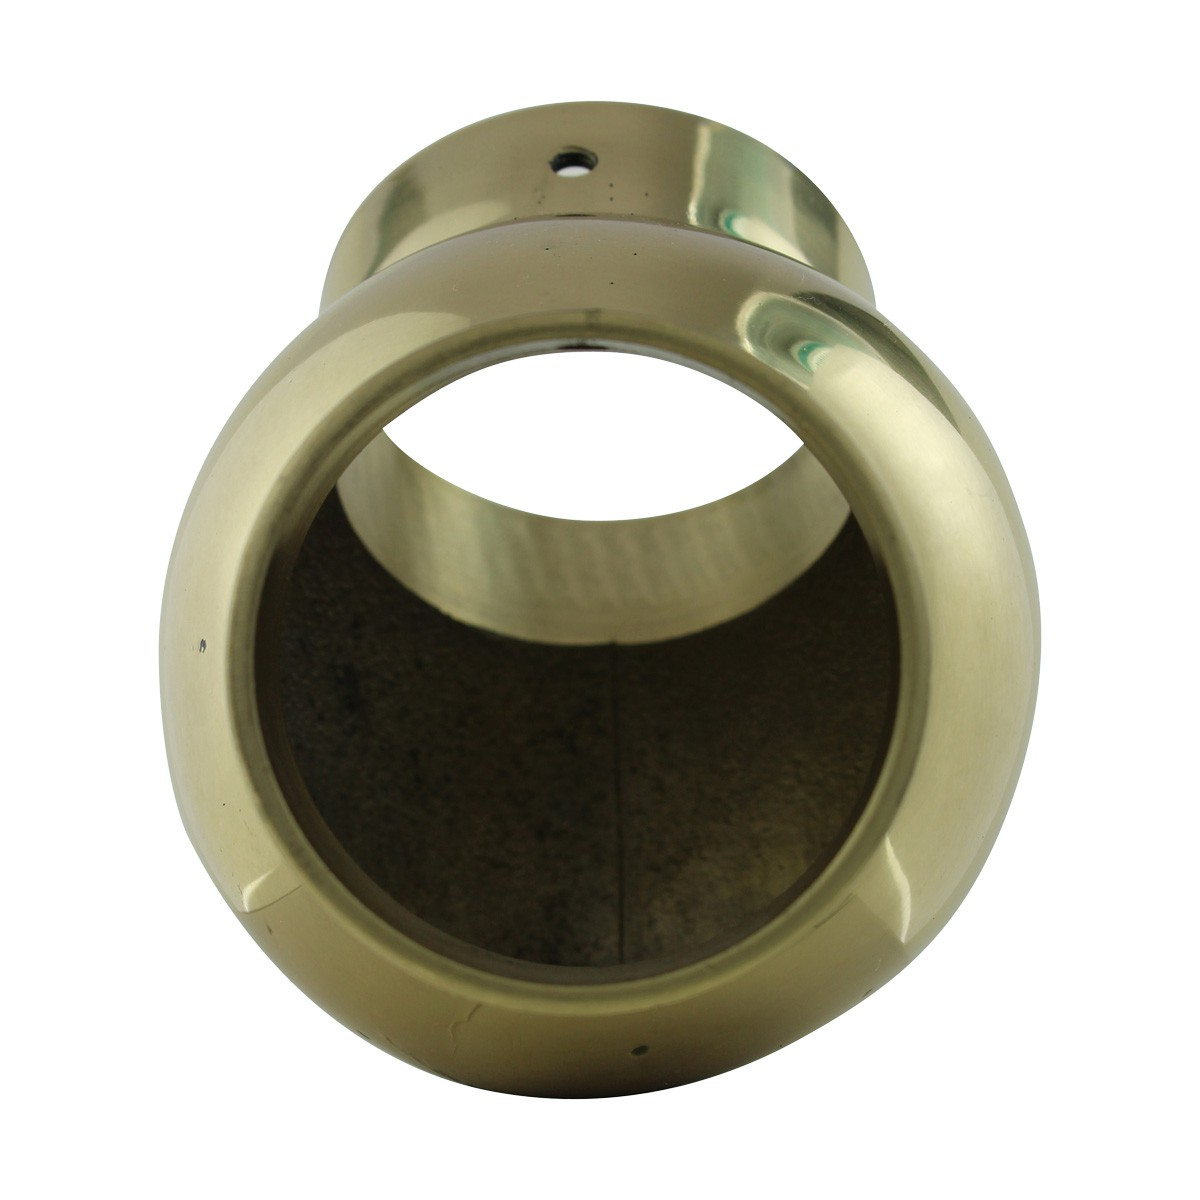 Tubing Connector Polished Brass Ball Joint Fit 1.5 OD Ball Rail Side Outlet Ball Foot Rail Fitting Ball Elbow Fitting